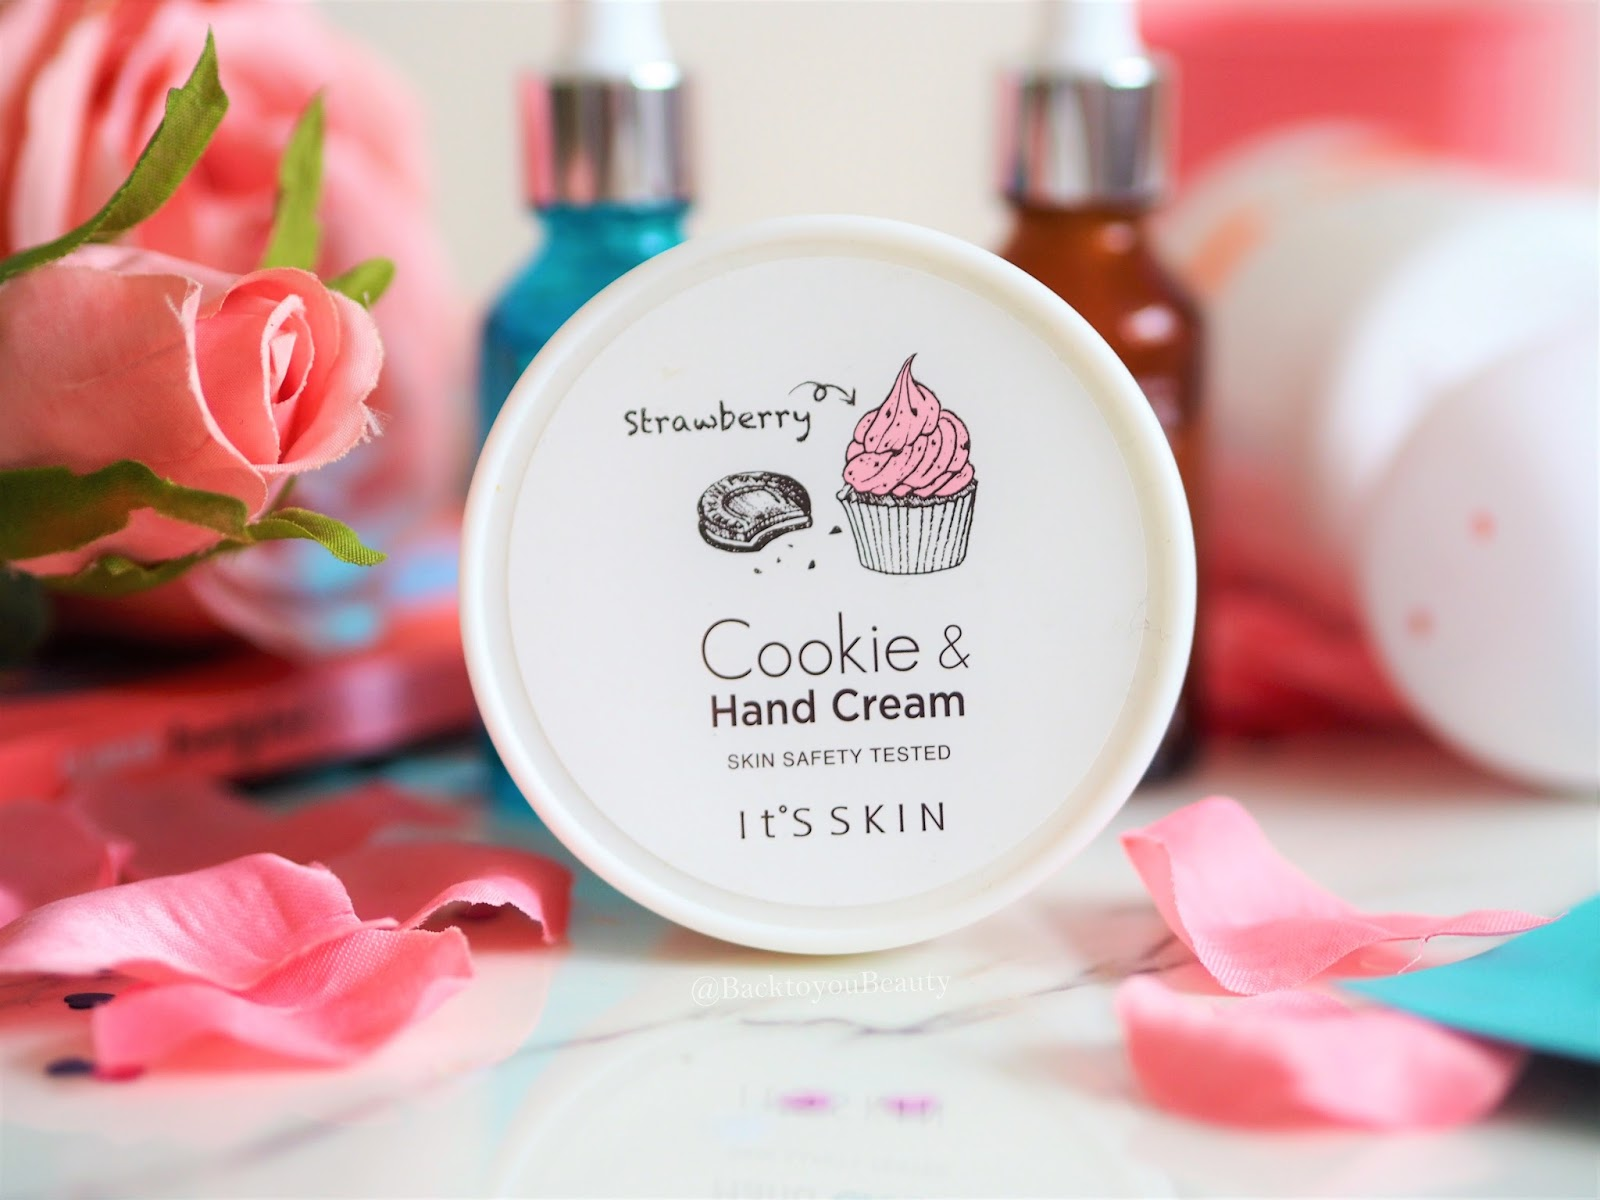 It's Skin Cookie and Handcream